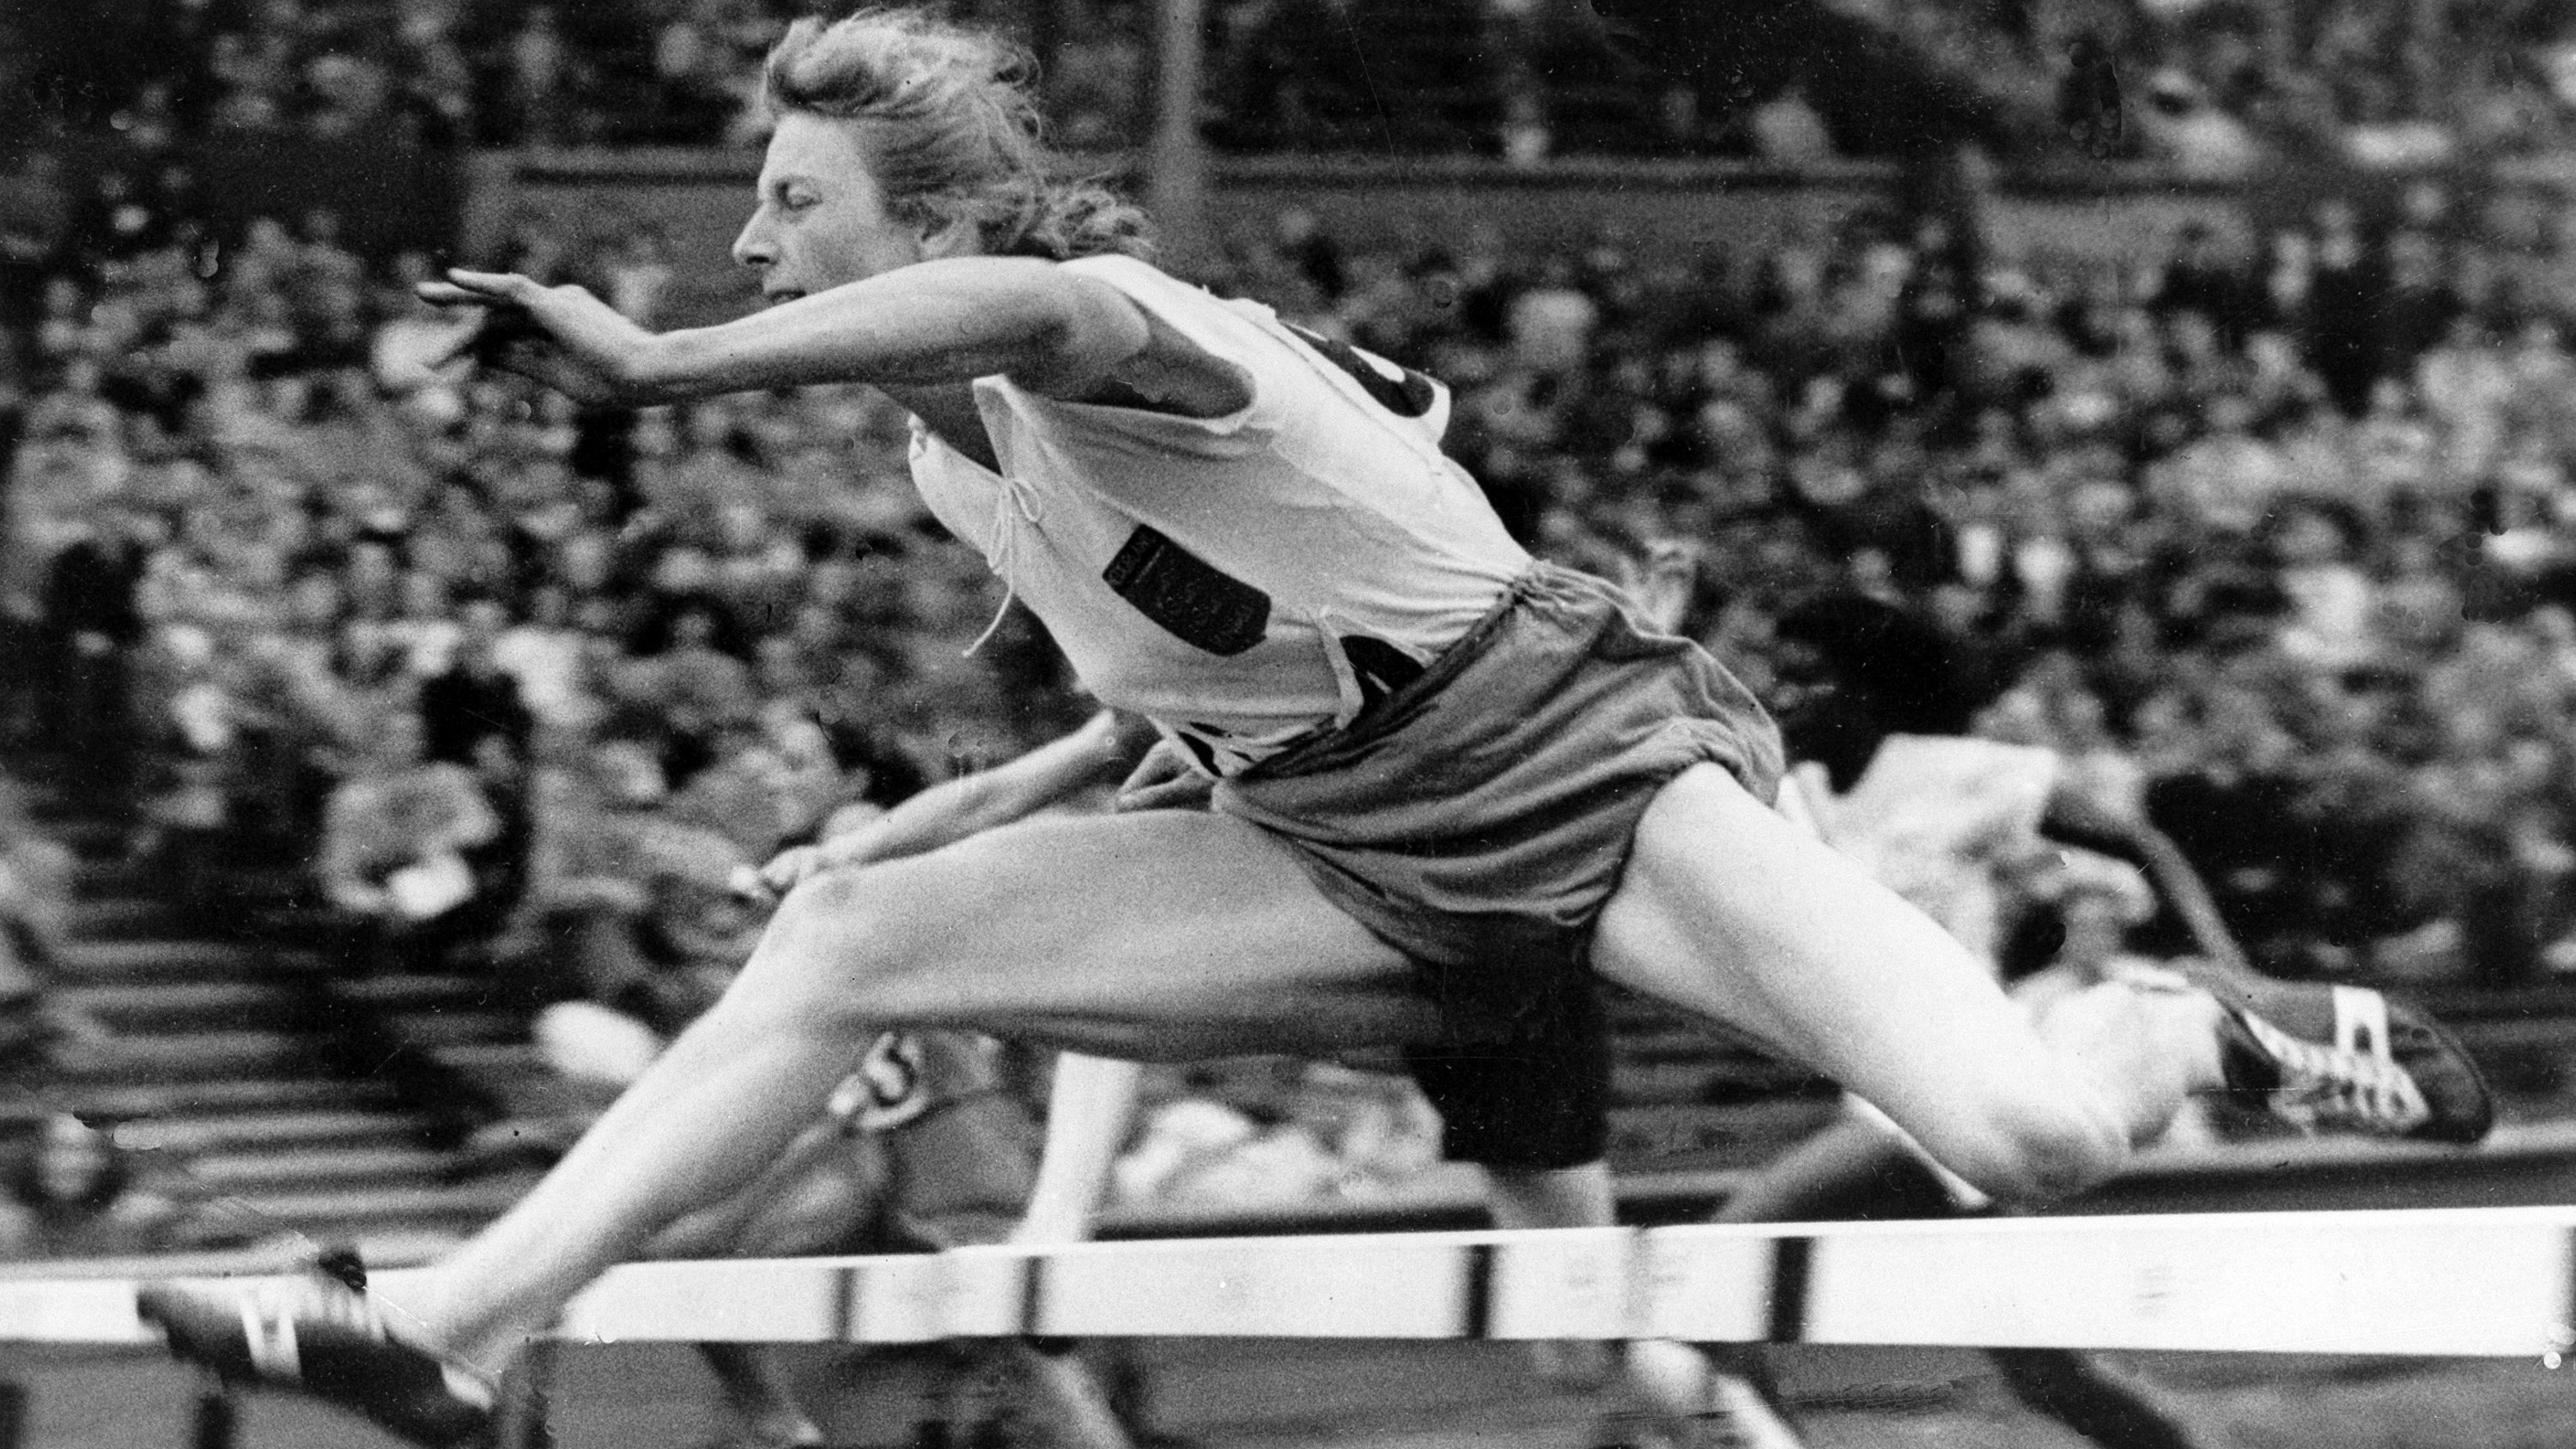 Mrs. Fanny Blankers-Koen, the Dutchwoman, winning the last lap of the 400 meters relay final at Wembley Stadium in London, United Kingdom, on August 7, 1948, to make Holland the winners of the event in 47.5 sec. Also in picture is H.H. Nissen of Denmark who came second with USA third. (AP Photo)